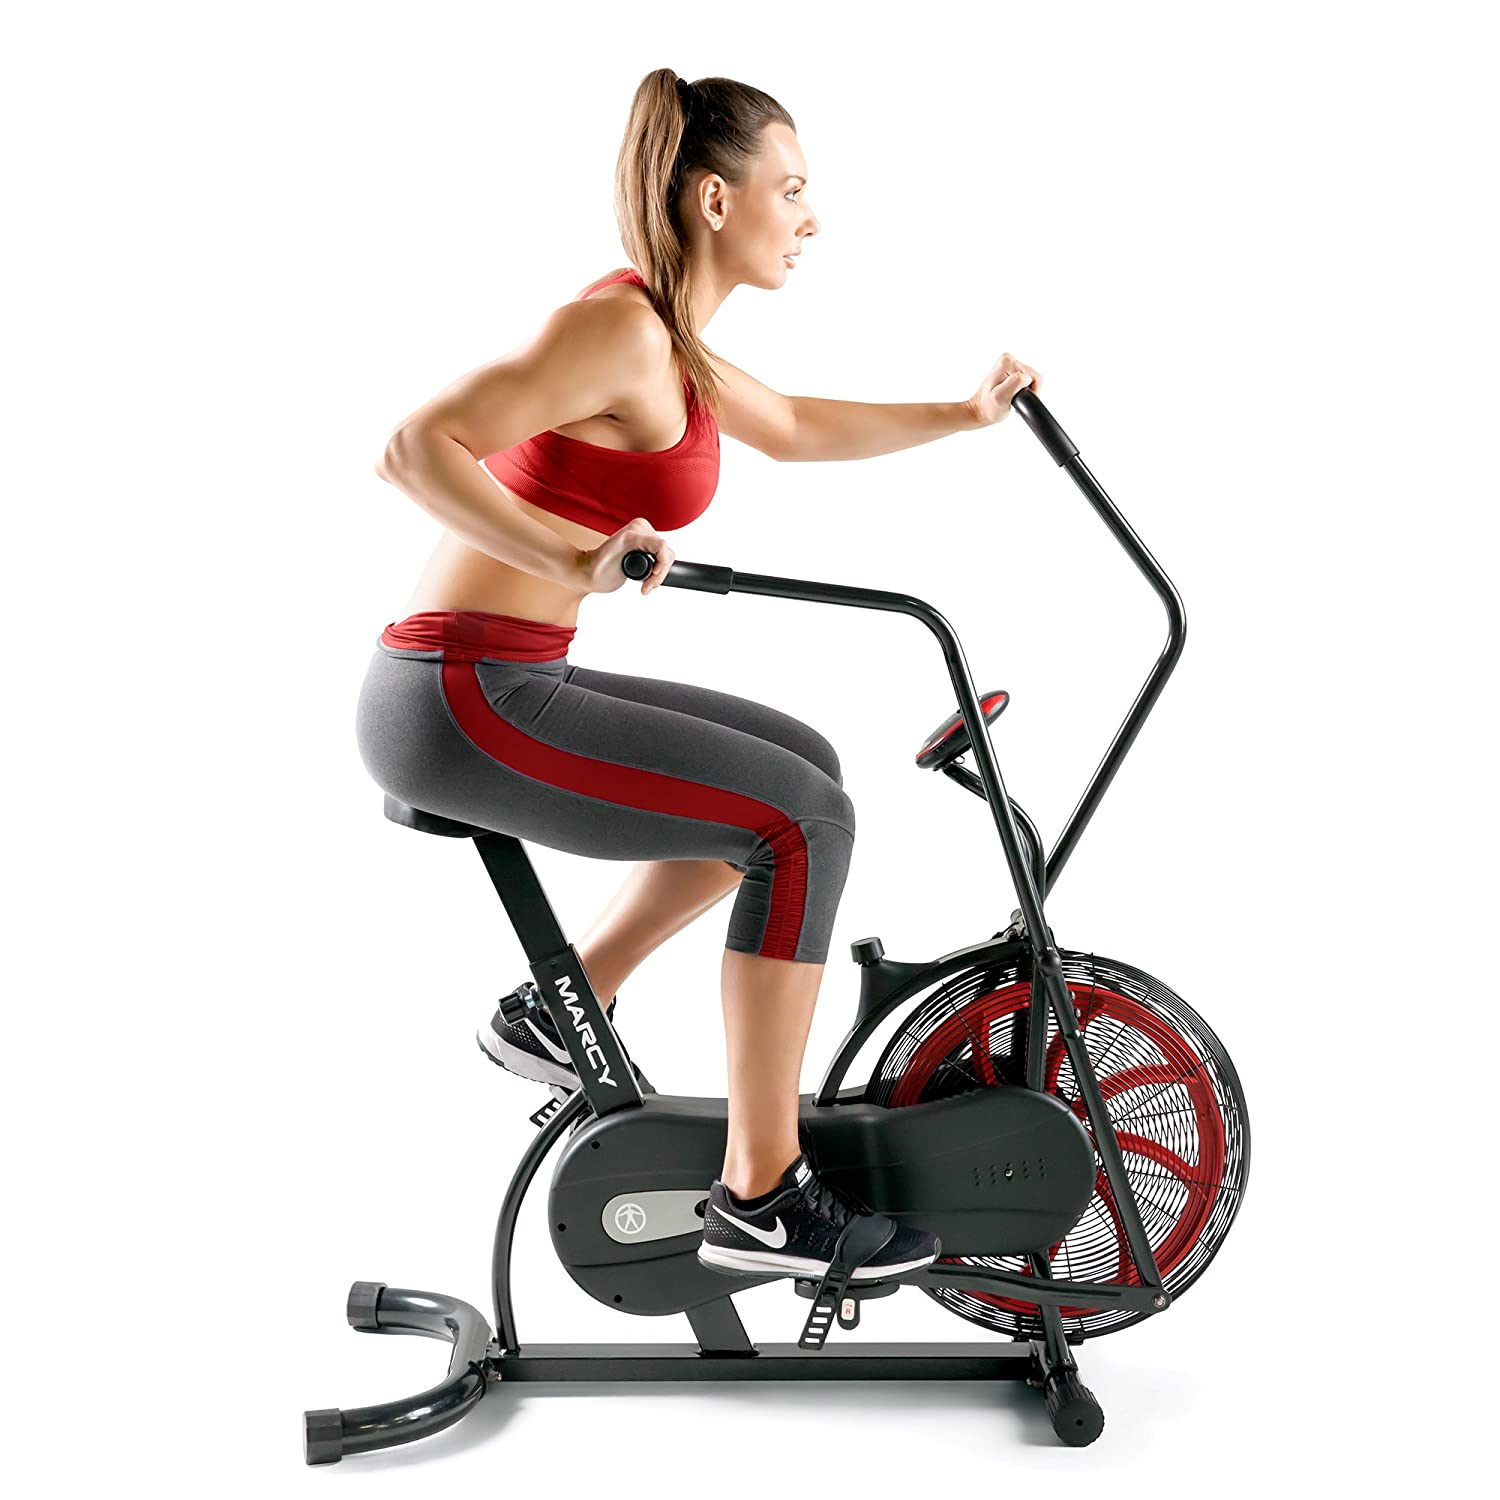 fan exercise bike. buy marcy fan exercise bike with air resistance system - red and black ns-1000 online at low prices in india amazon.in n